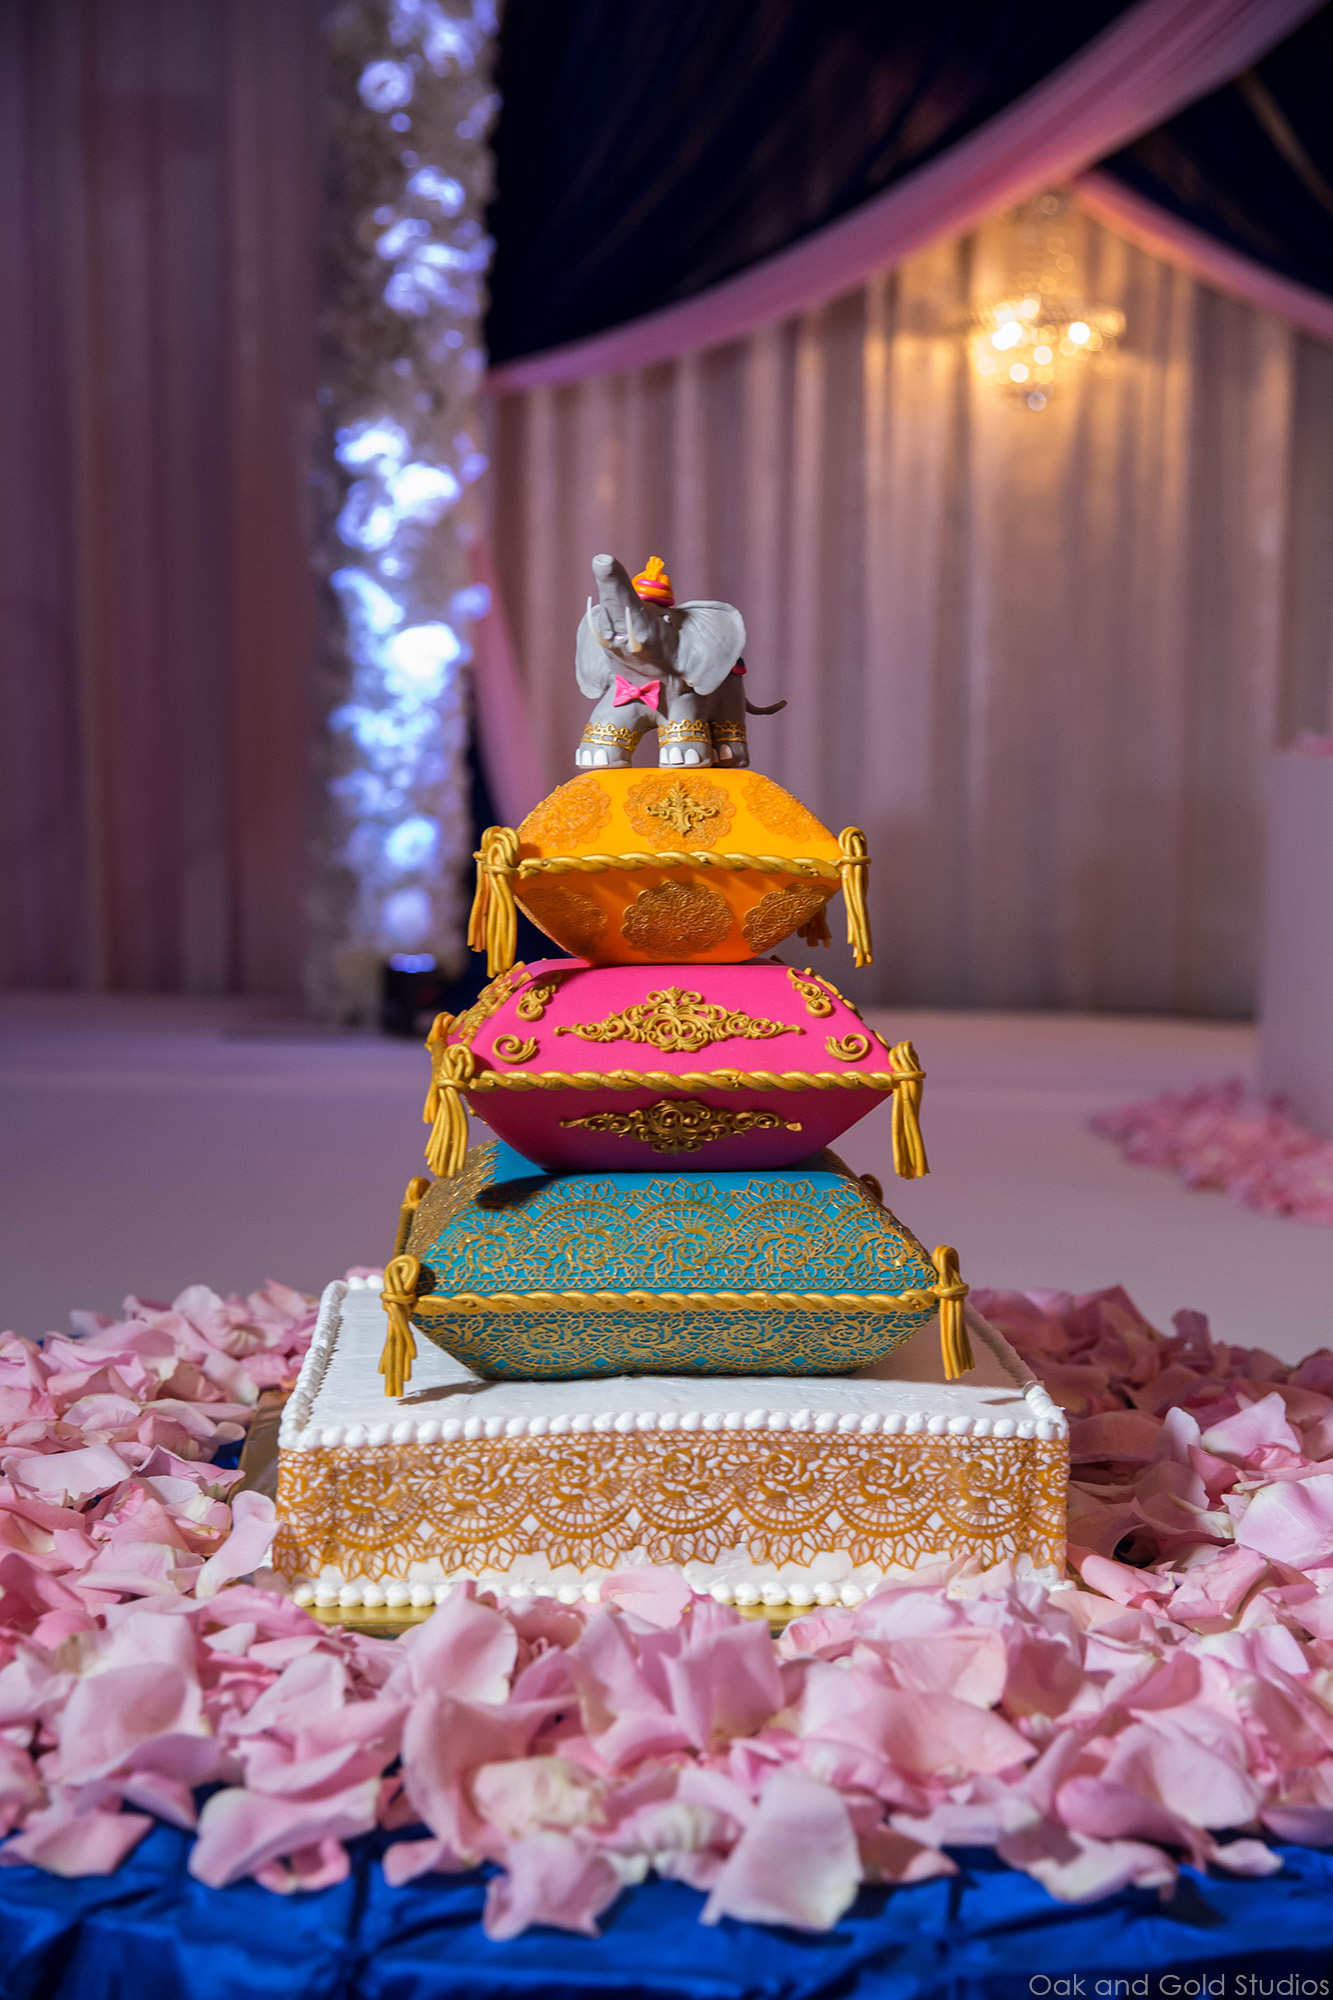 This cake was made by the bride - Roshni. And no, she isn't a professional baker. Can you say TALENT?!